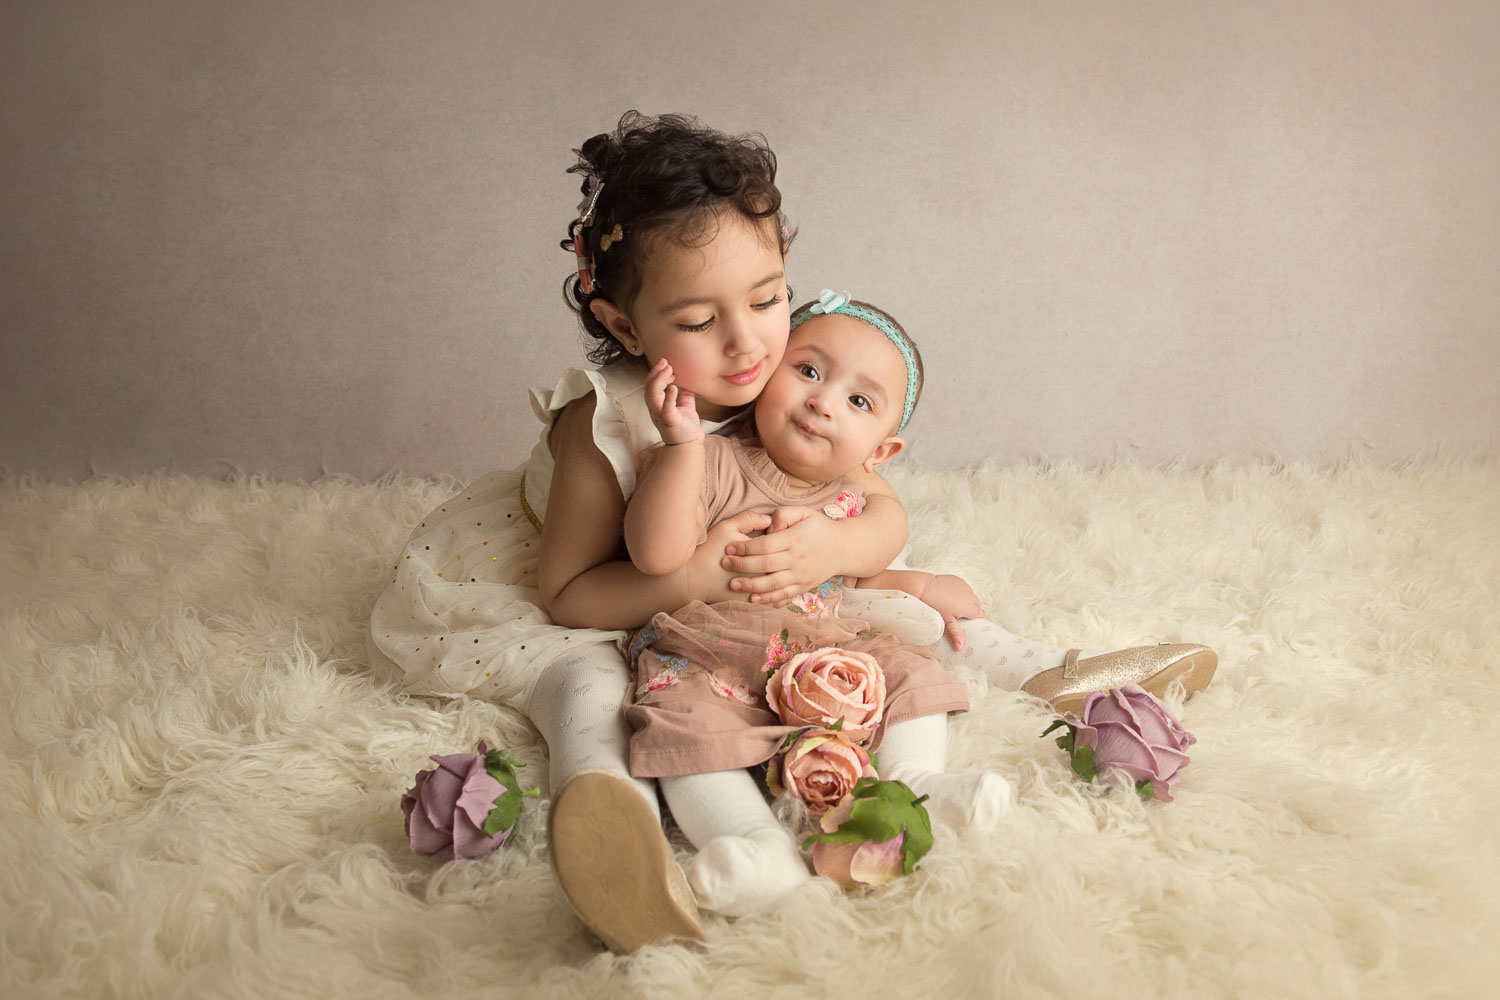 child and baby photo by siobhan kelly photography